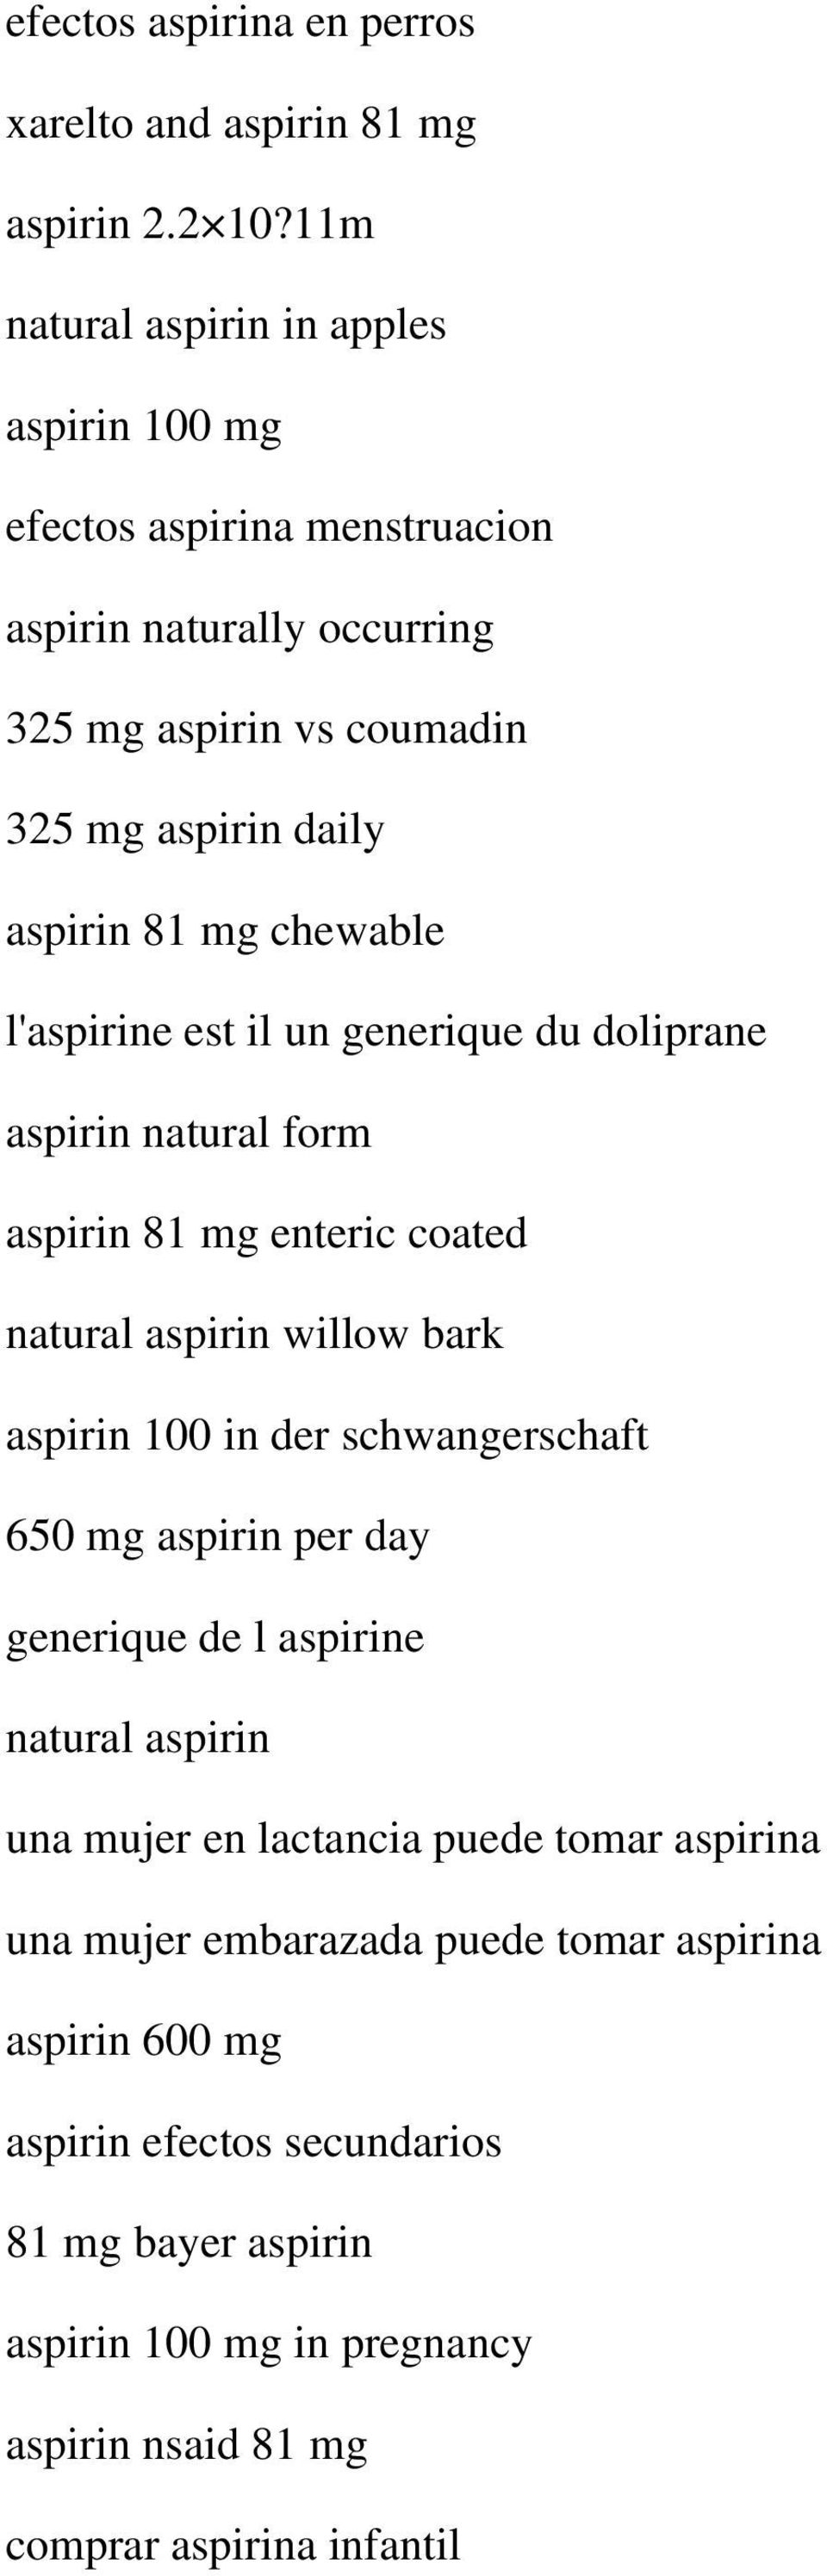 chewable l'aspirine est il un generique du doliprane aspirin natural form aspirin 81 mg enteric coated natural aspirin willow bark aspirin 100 in der schwangerschaft 650